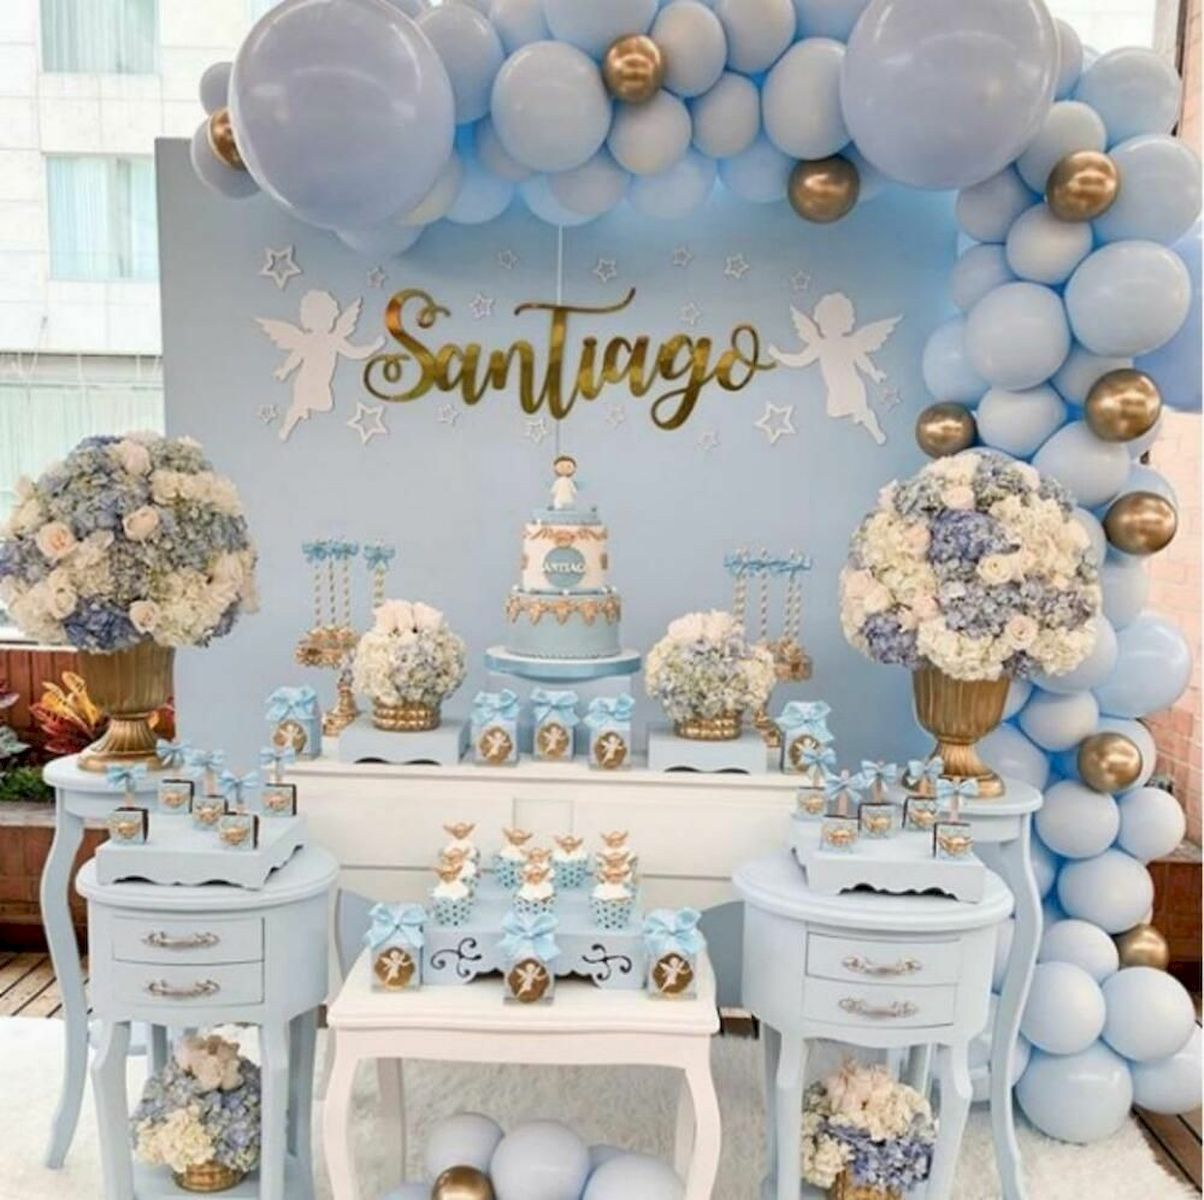 50 Awesome Baby Shower Themes And Decorating Ideas For Boy 37 Baby Shower Balloons Decoracion Baby Shower 1st Boy Birthday